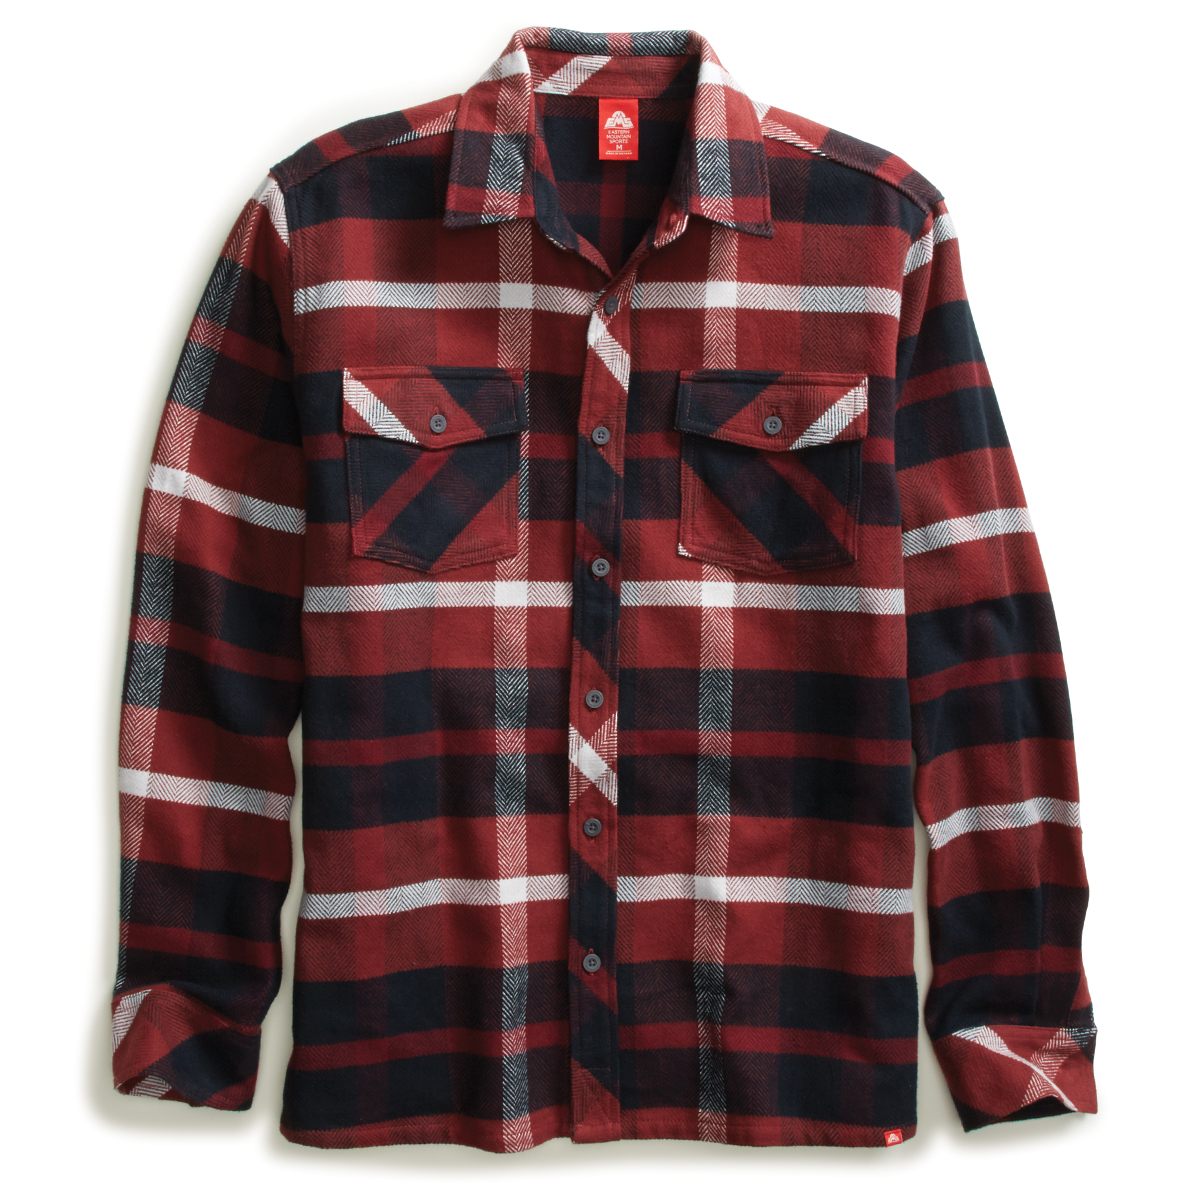 Ems Men's Cabin Flannel Long-Sleeve Shirt - Red, S